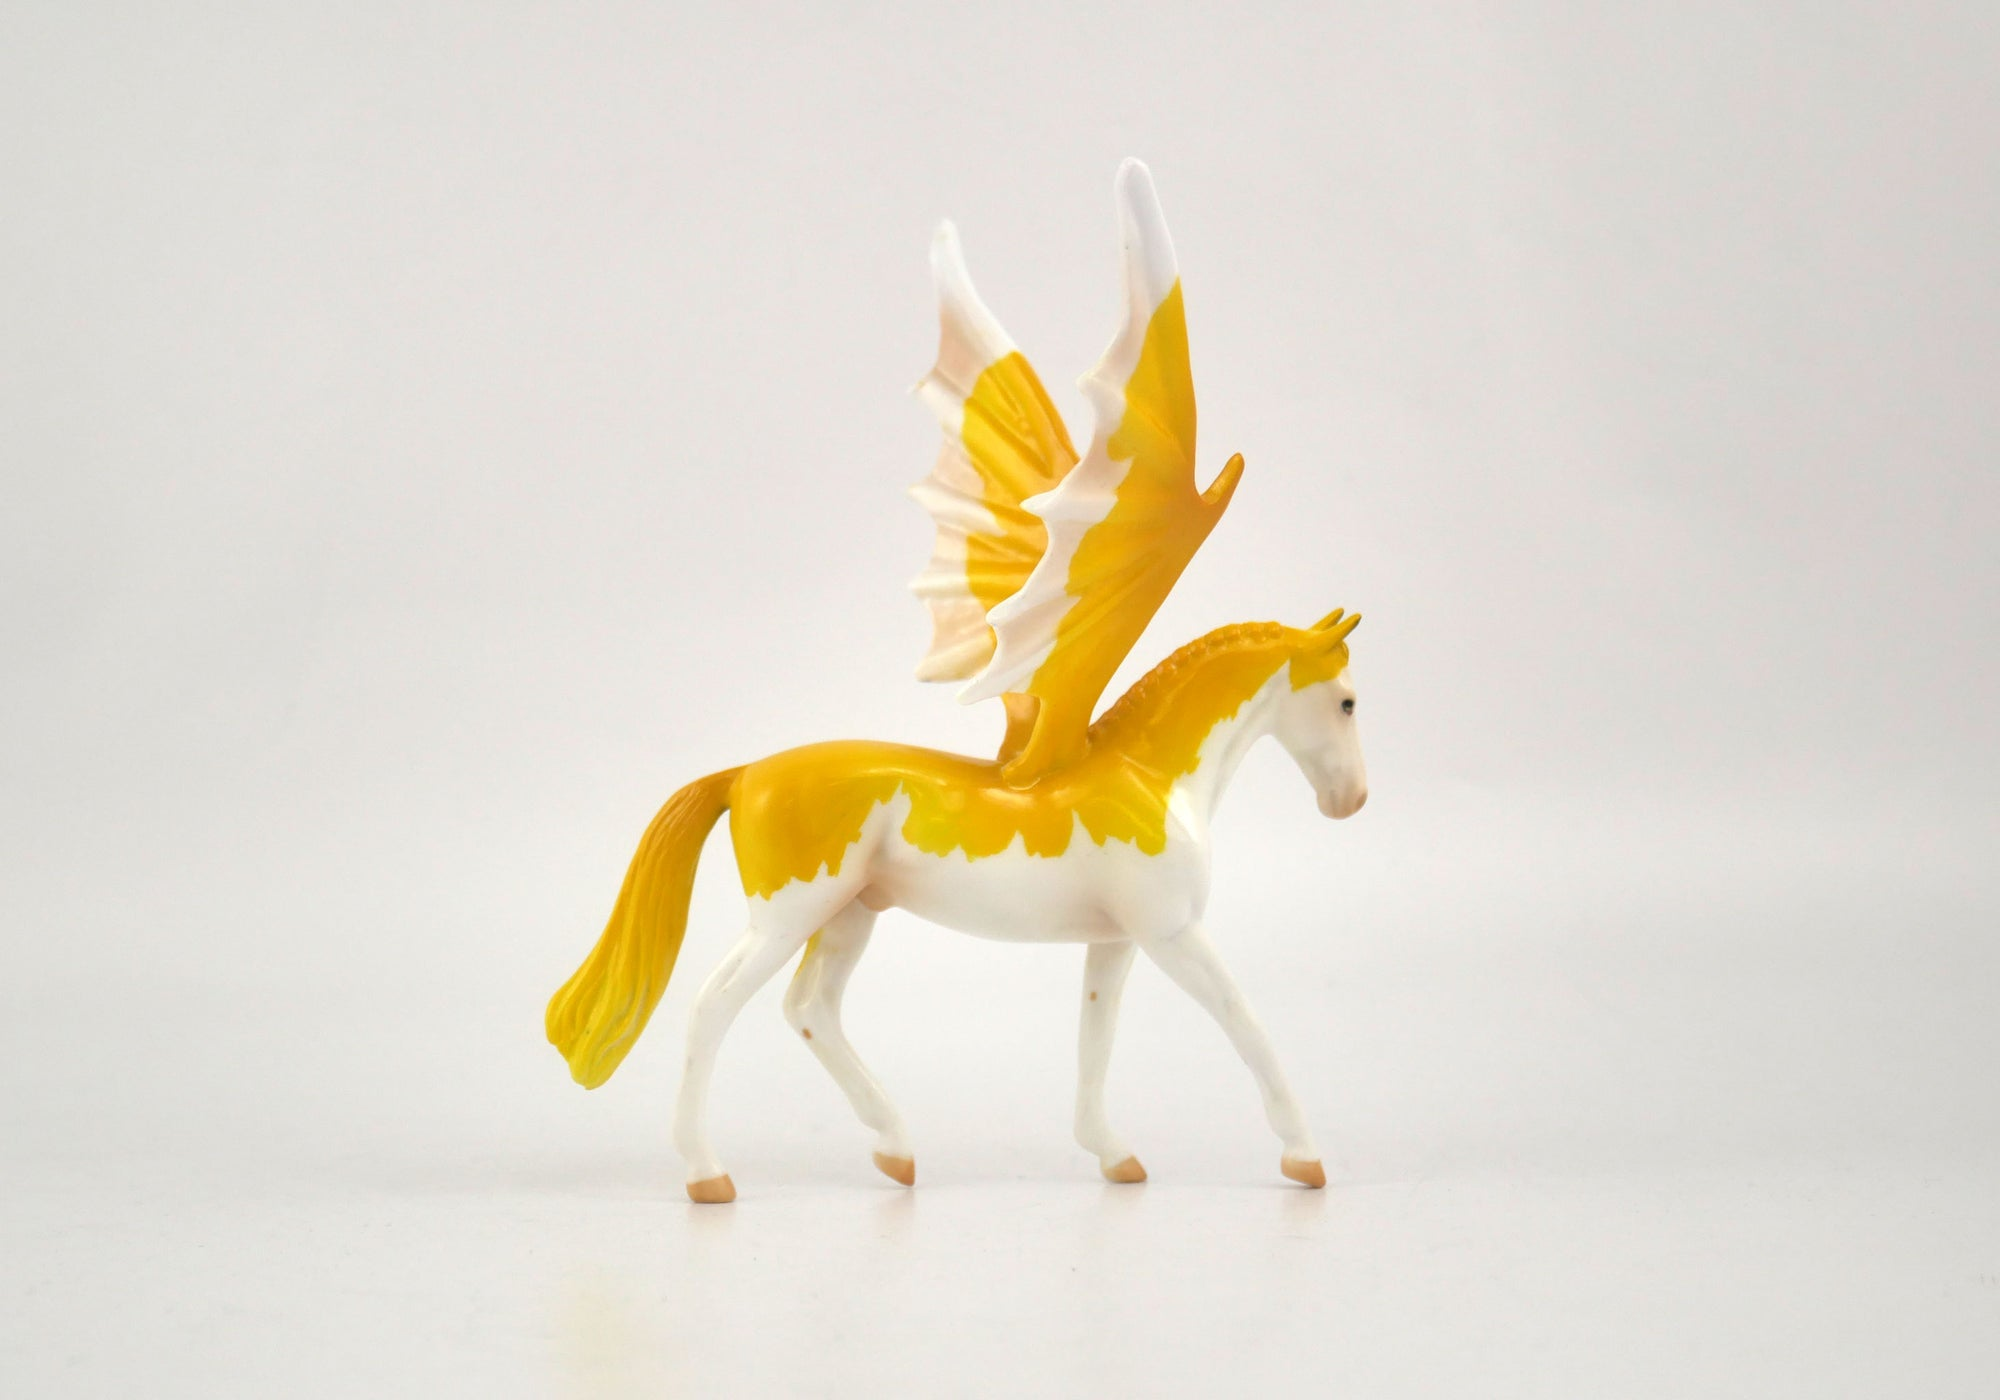 Astaroth-OOAK Warmblood Chip By Audrey Dixon MM 2020